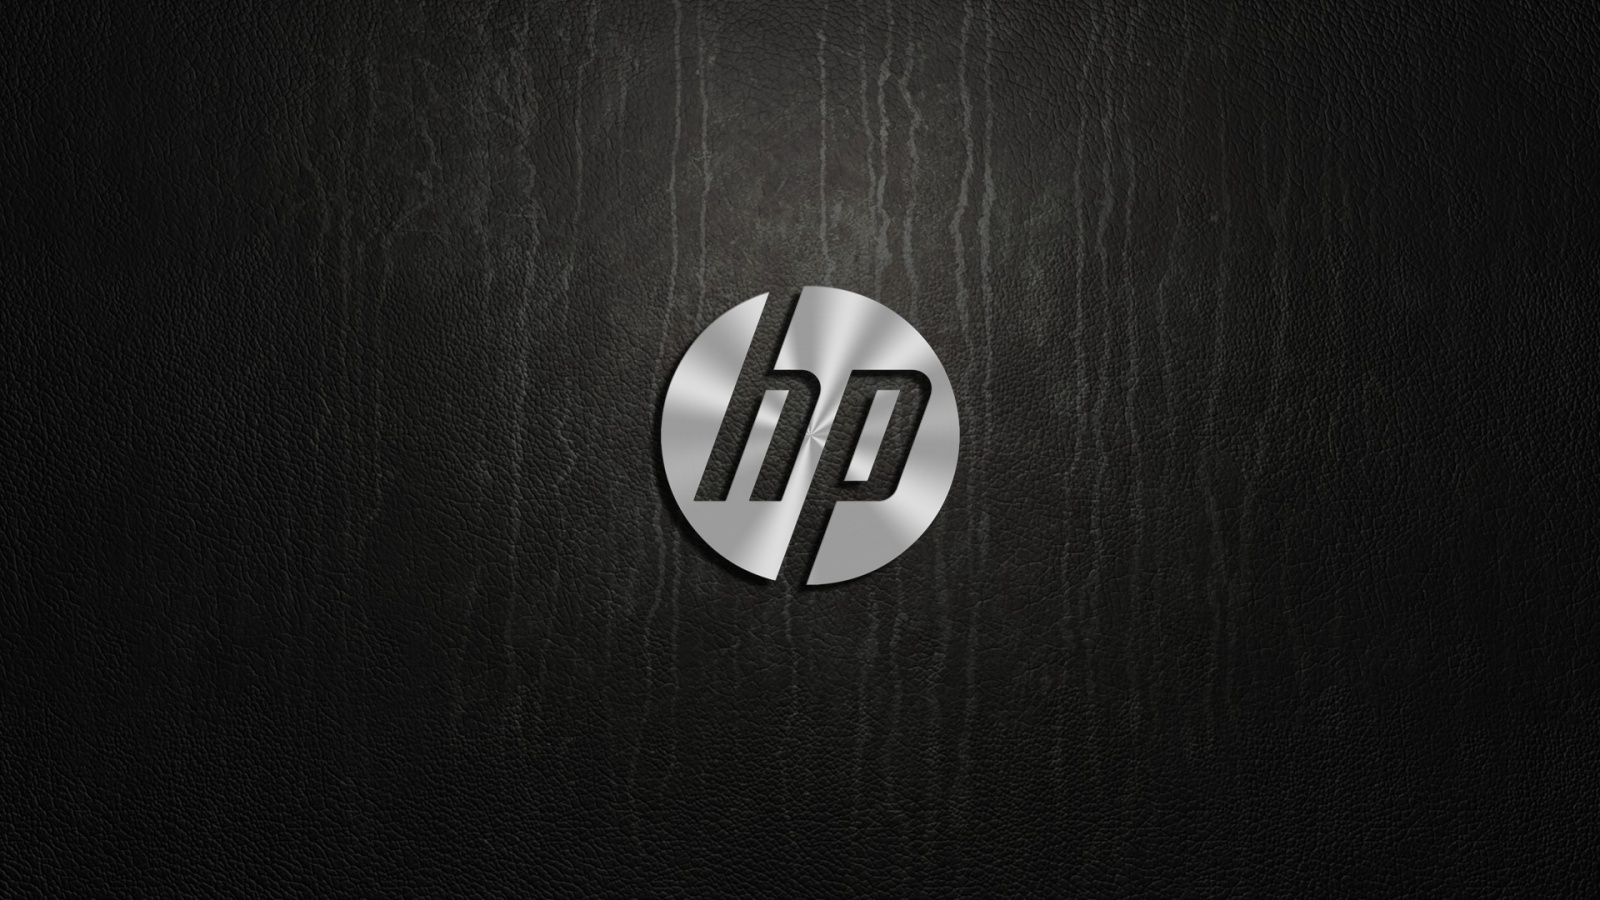 hp metal logo wallpapers - 1600x900 - 466327